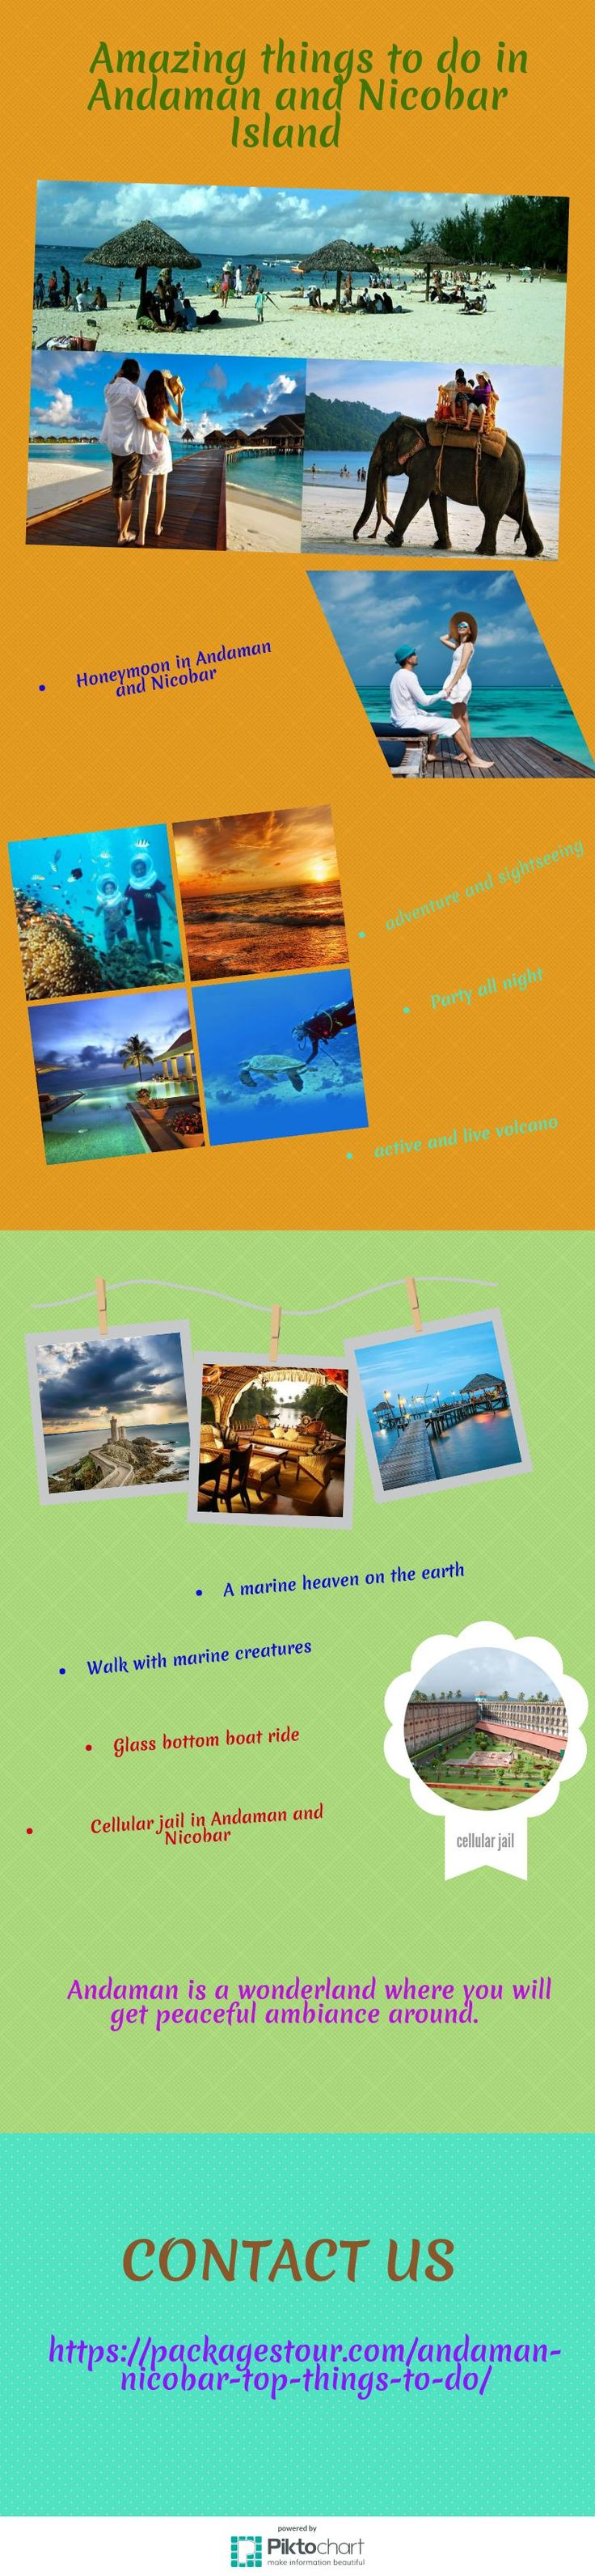 Things to do in Andaman and Nicobar Island - Activities and Islands tourism information wildlife, under water activities to do in Andaman and Nicobar Island. If you are expecting a fairy tale romance on honeymoon beaches, then you can compare go for Andaman vs Lakshadweep vs Goa. When you are in Andaman, you will find a romantic air that binds you and your partner in a salubrious climate round the year. https://packagestour.com/andaman-nicobar-top-things-to-do/